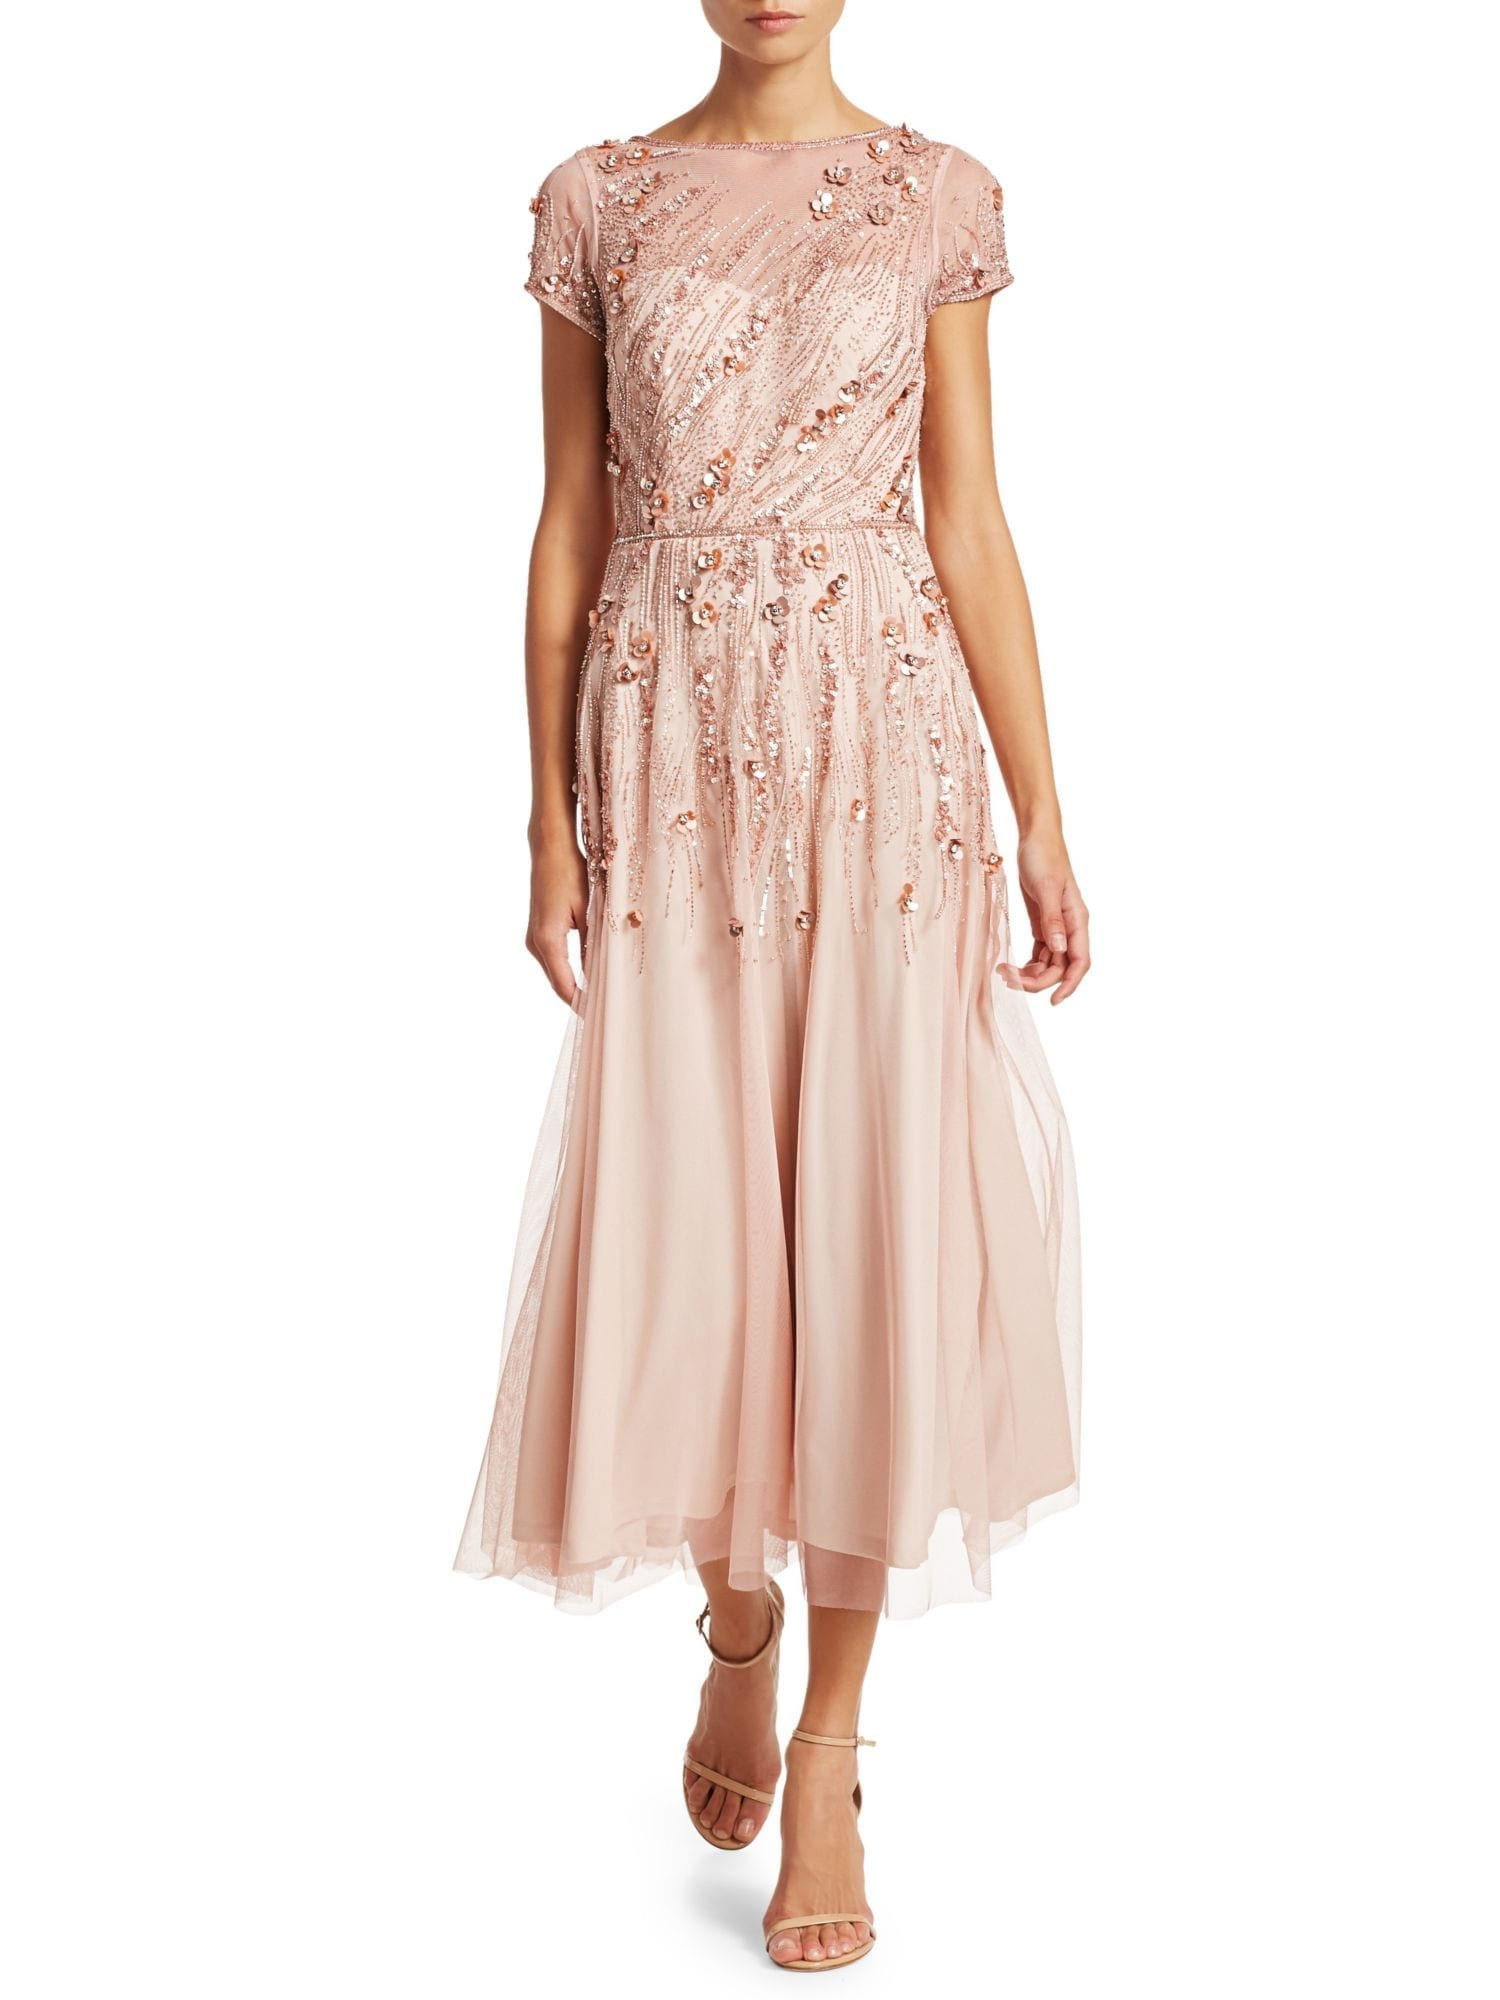 THEIA Embellished Tulle Cocktail Pink Dress